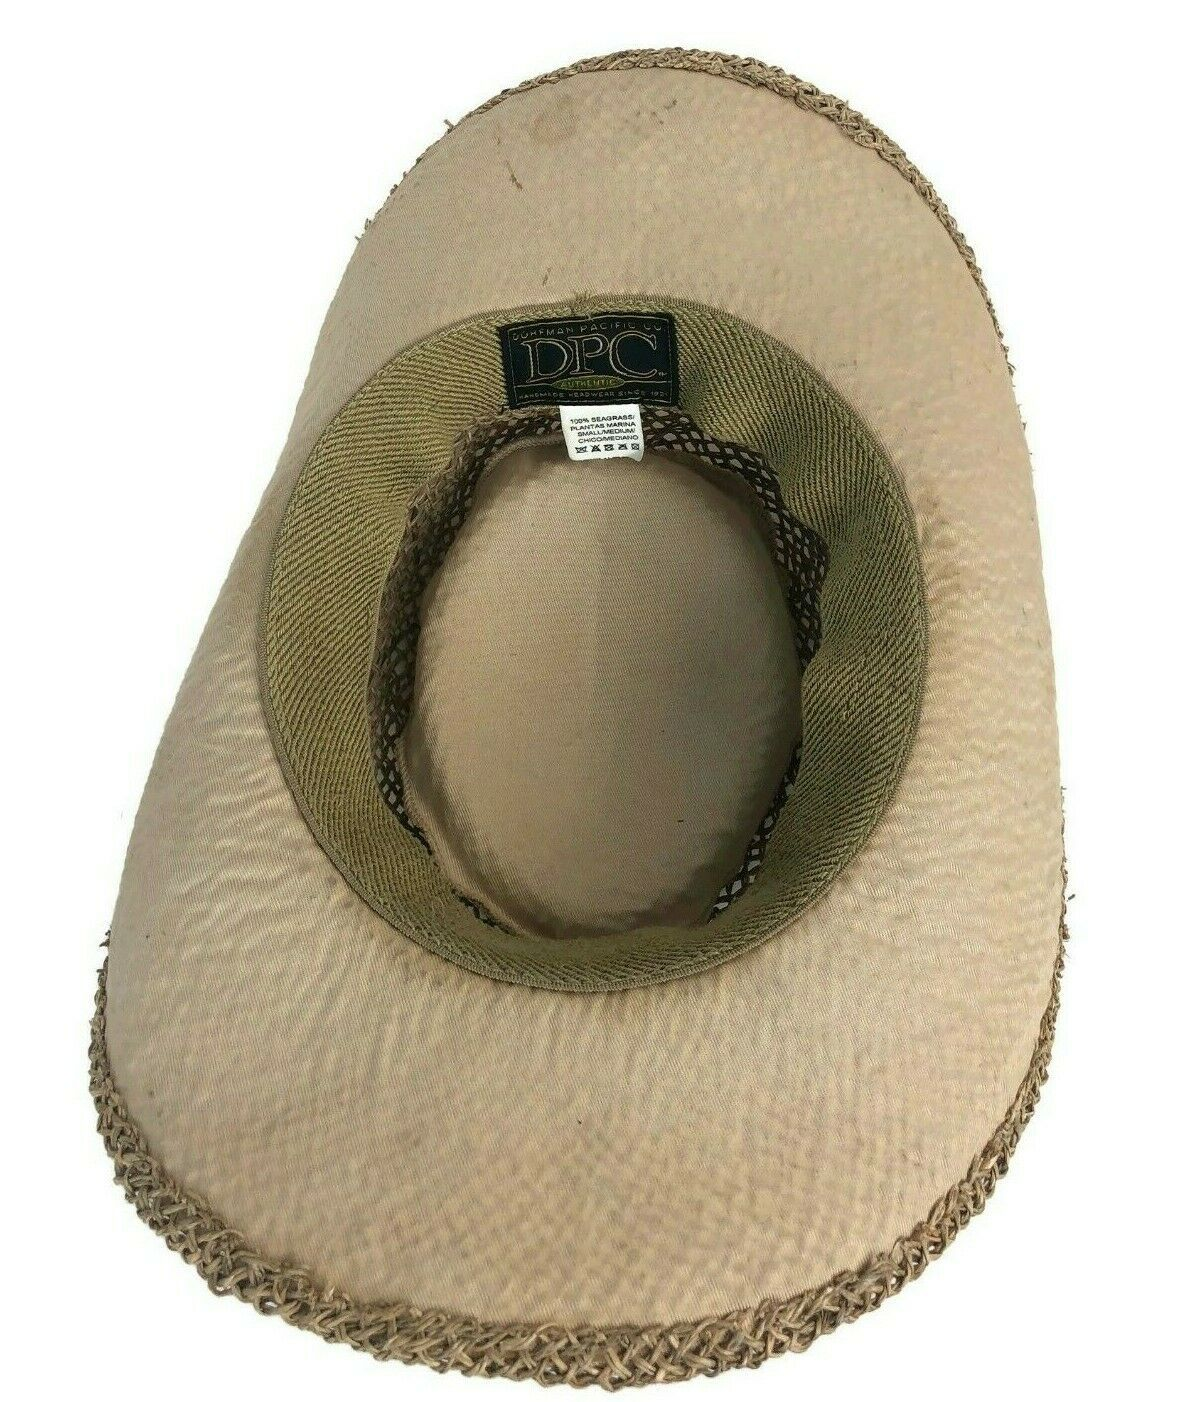 DPC Dorfman Pacific Co. Dad Miller Golf Course Men's Seagrass Straw Hat Small image 3